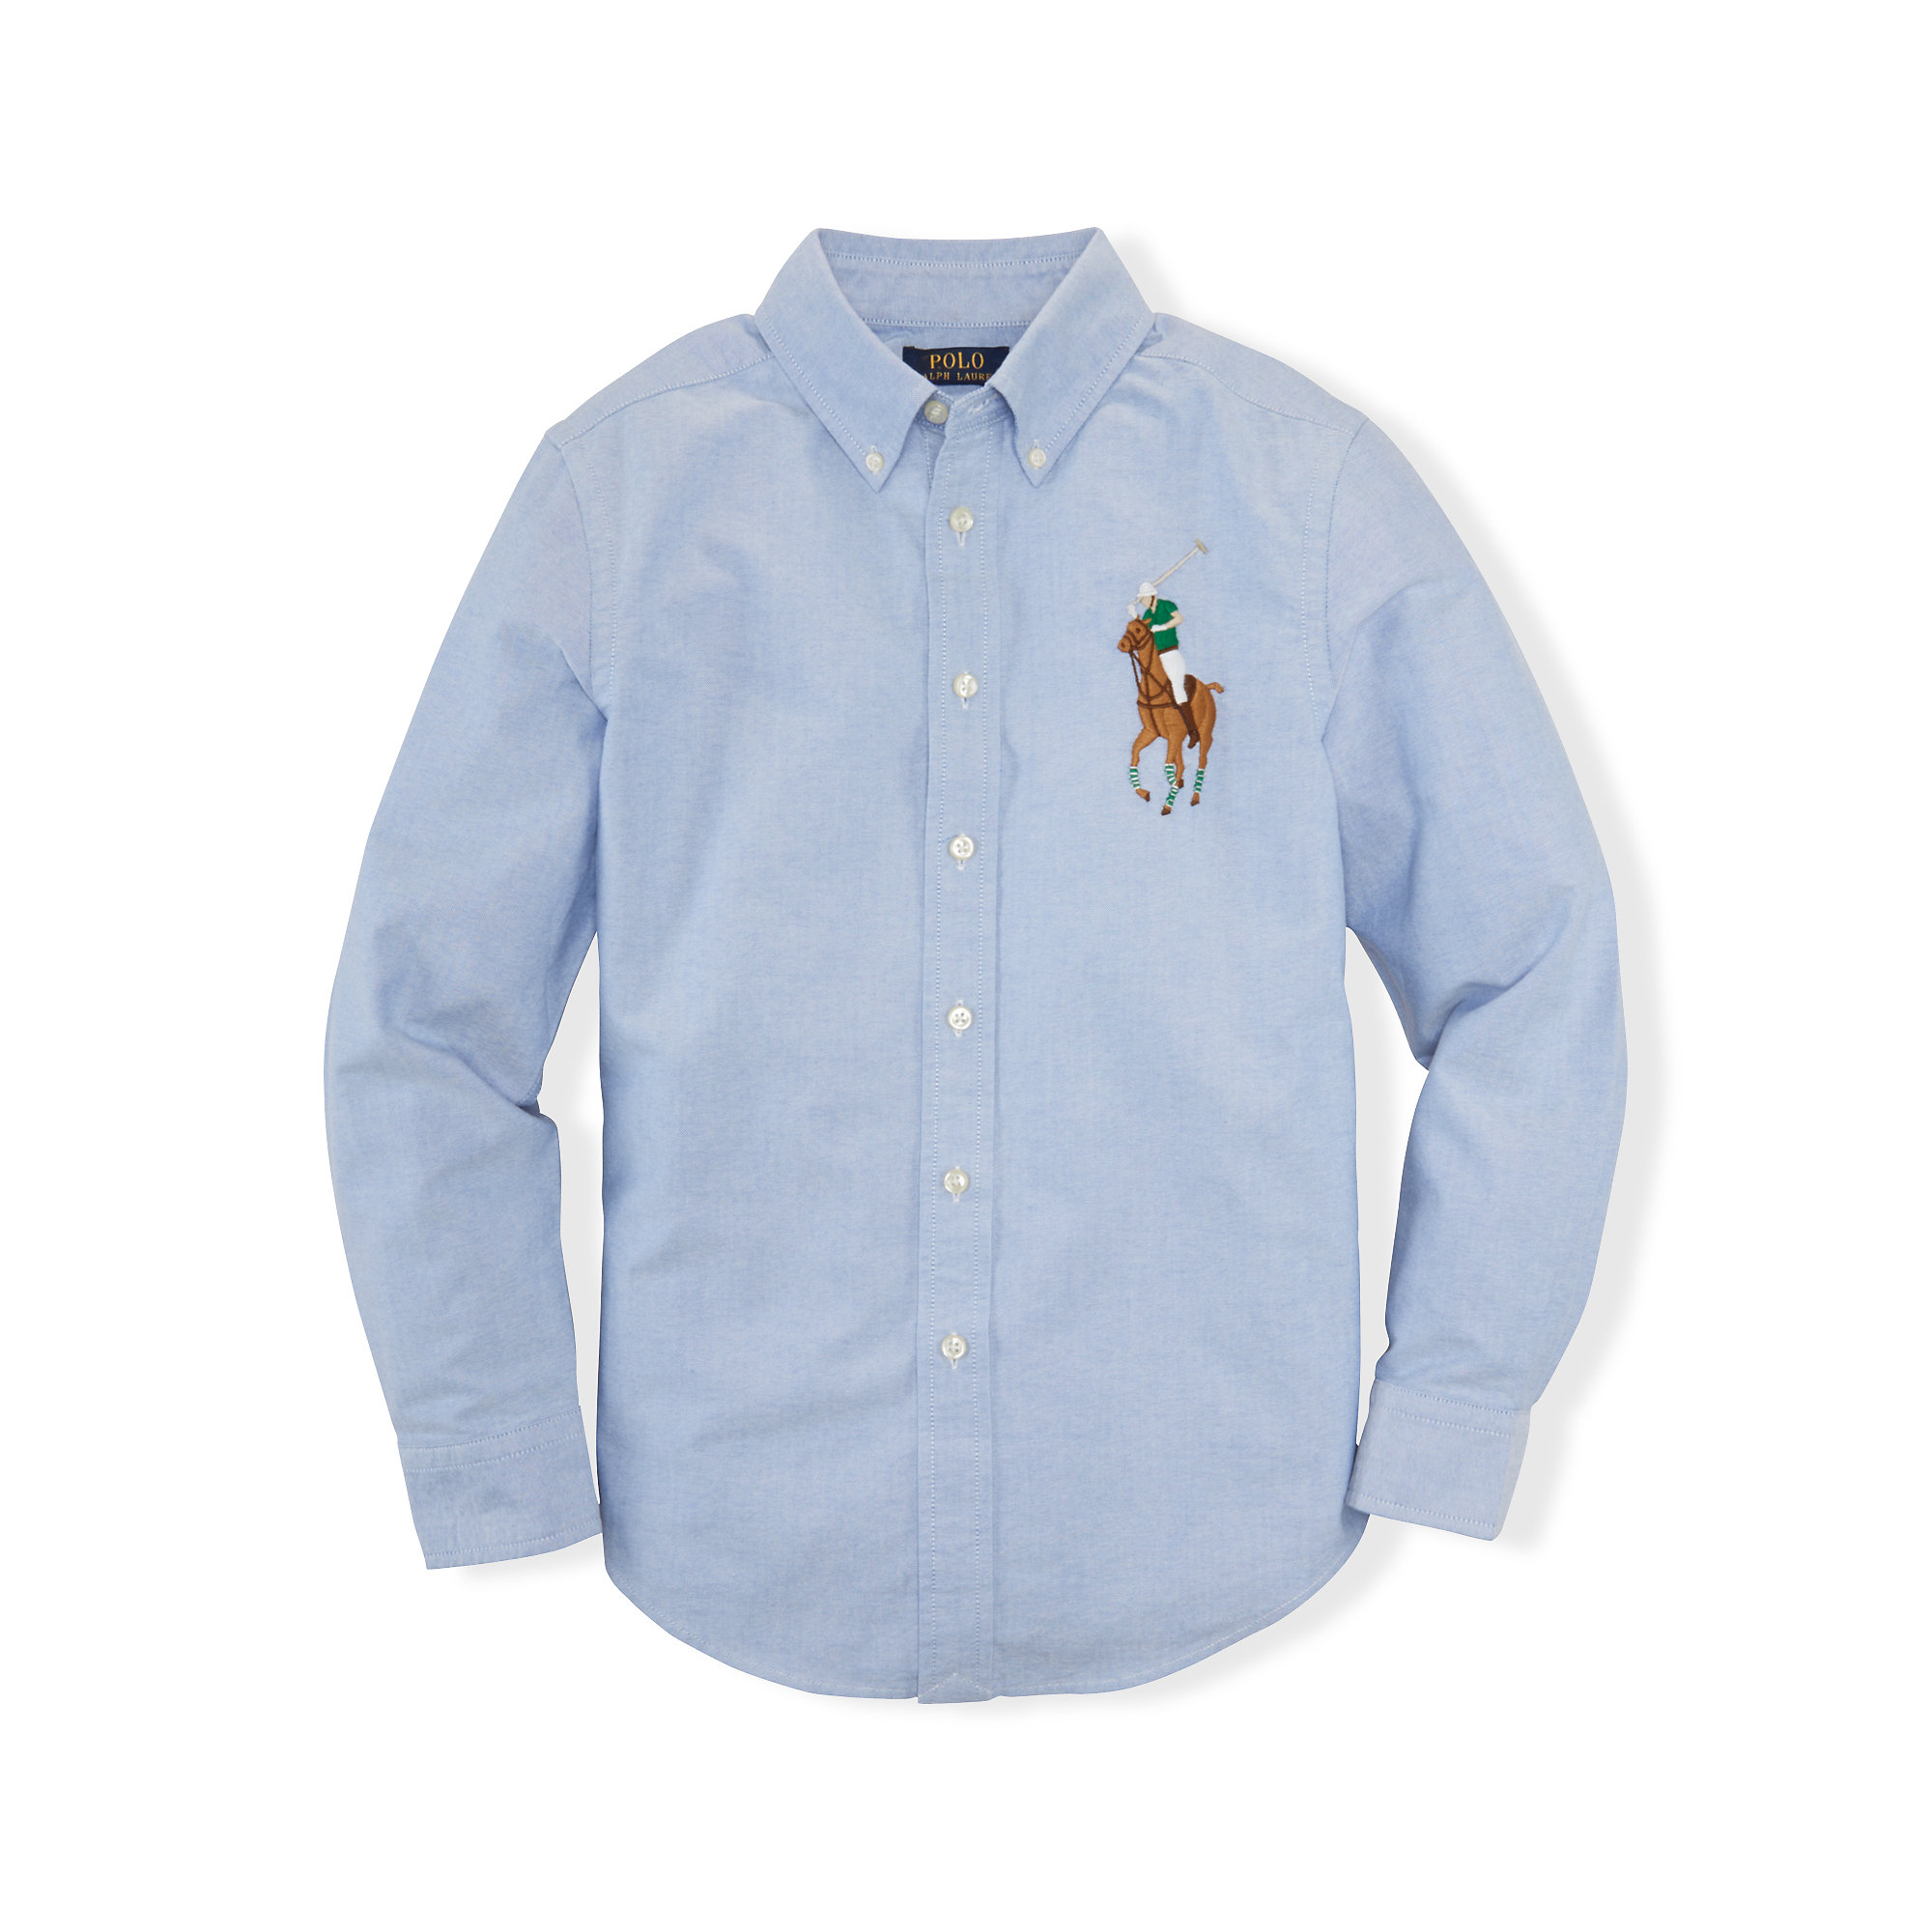 f990f252 ... sale lyst ralph lauren big pony cotton oxford shirt in blue for men  06b88 76a97